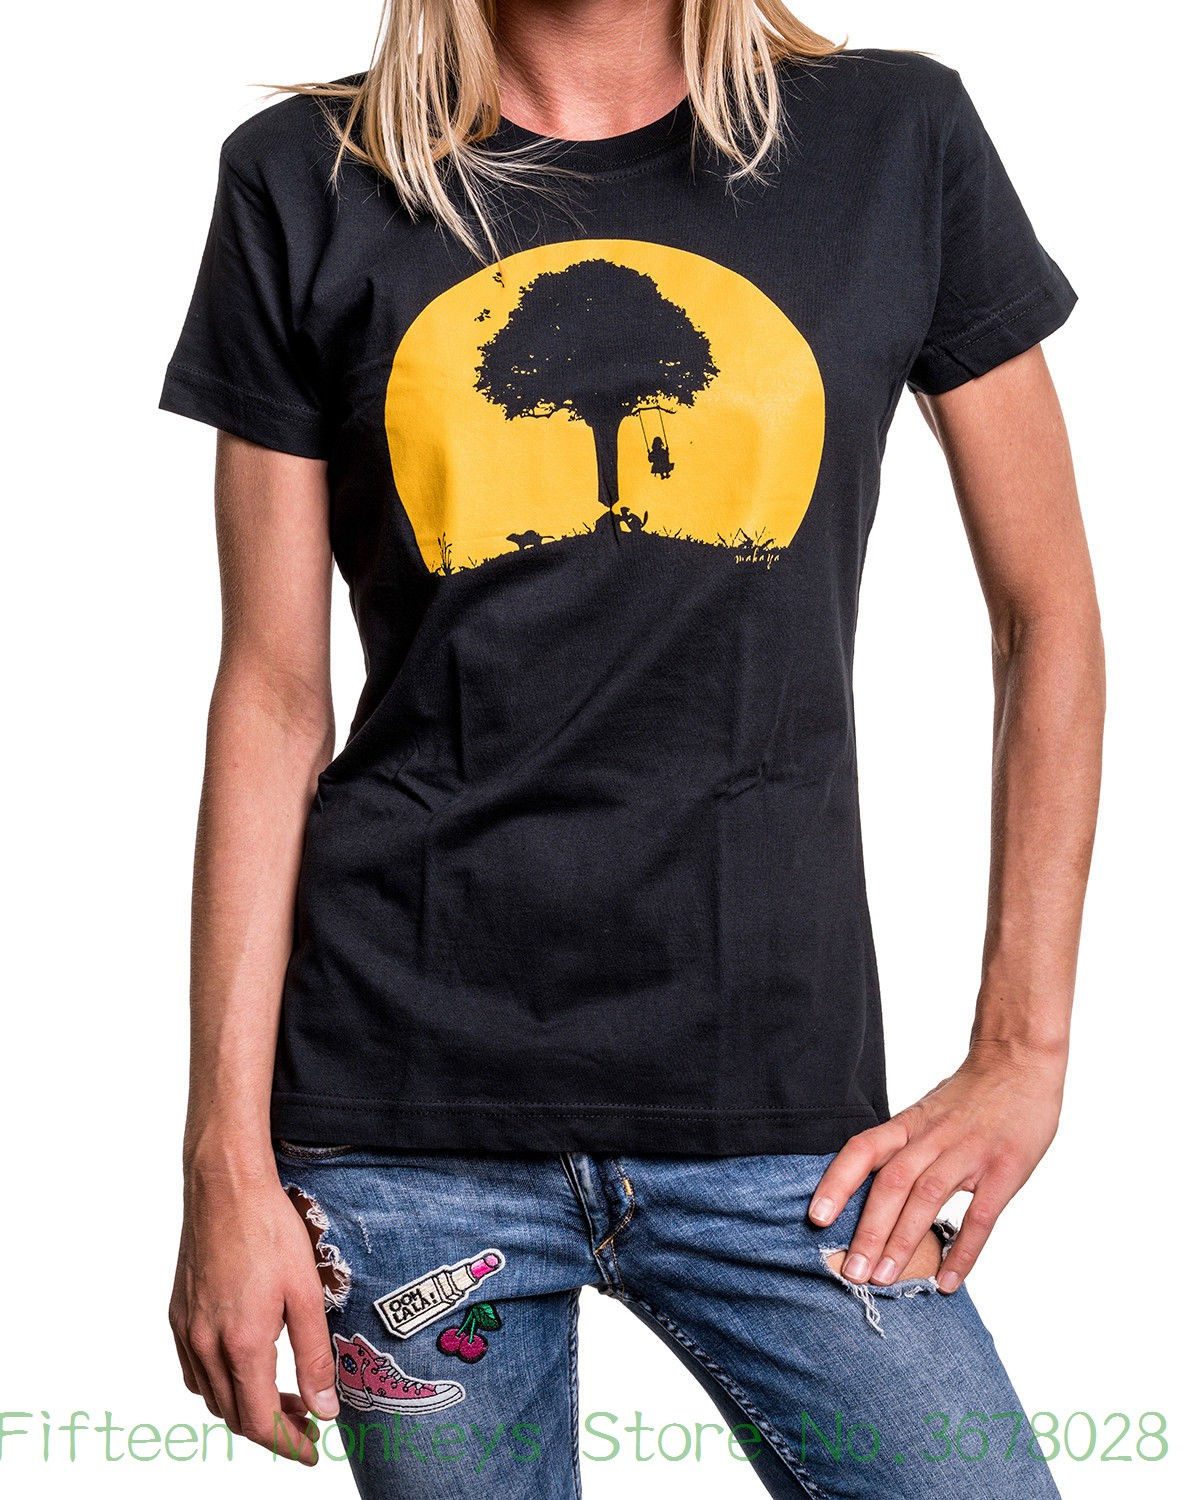 Women's Tee Funny Womens Shirt With Vintage Swing Graphic Design - Top Girl Tee Black S M L Funny Clothe Tee Shirt